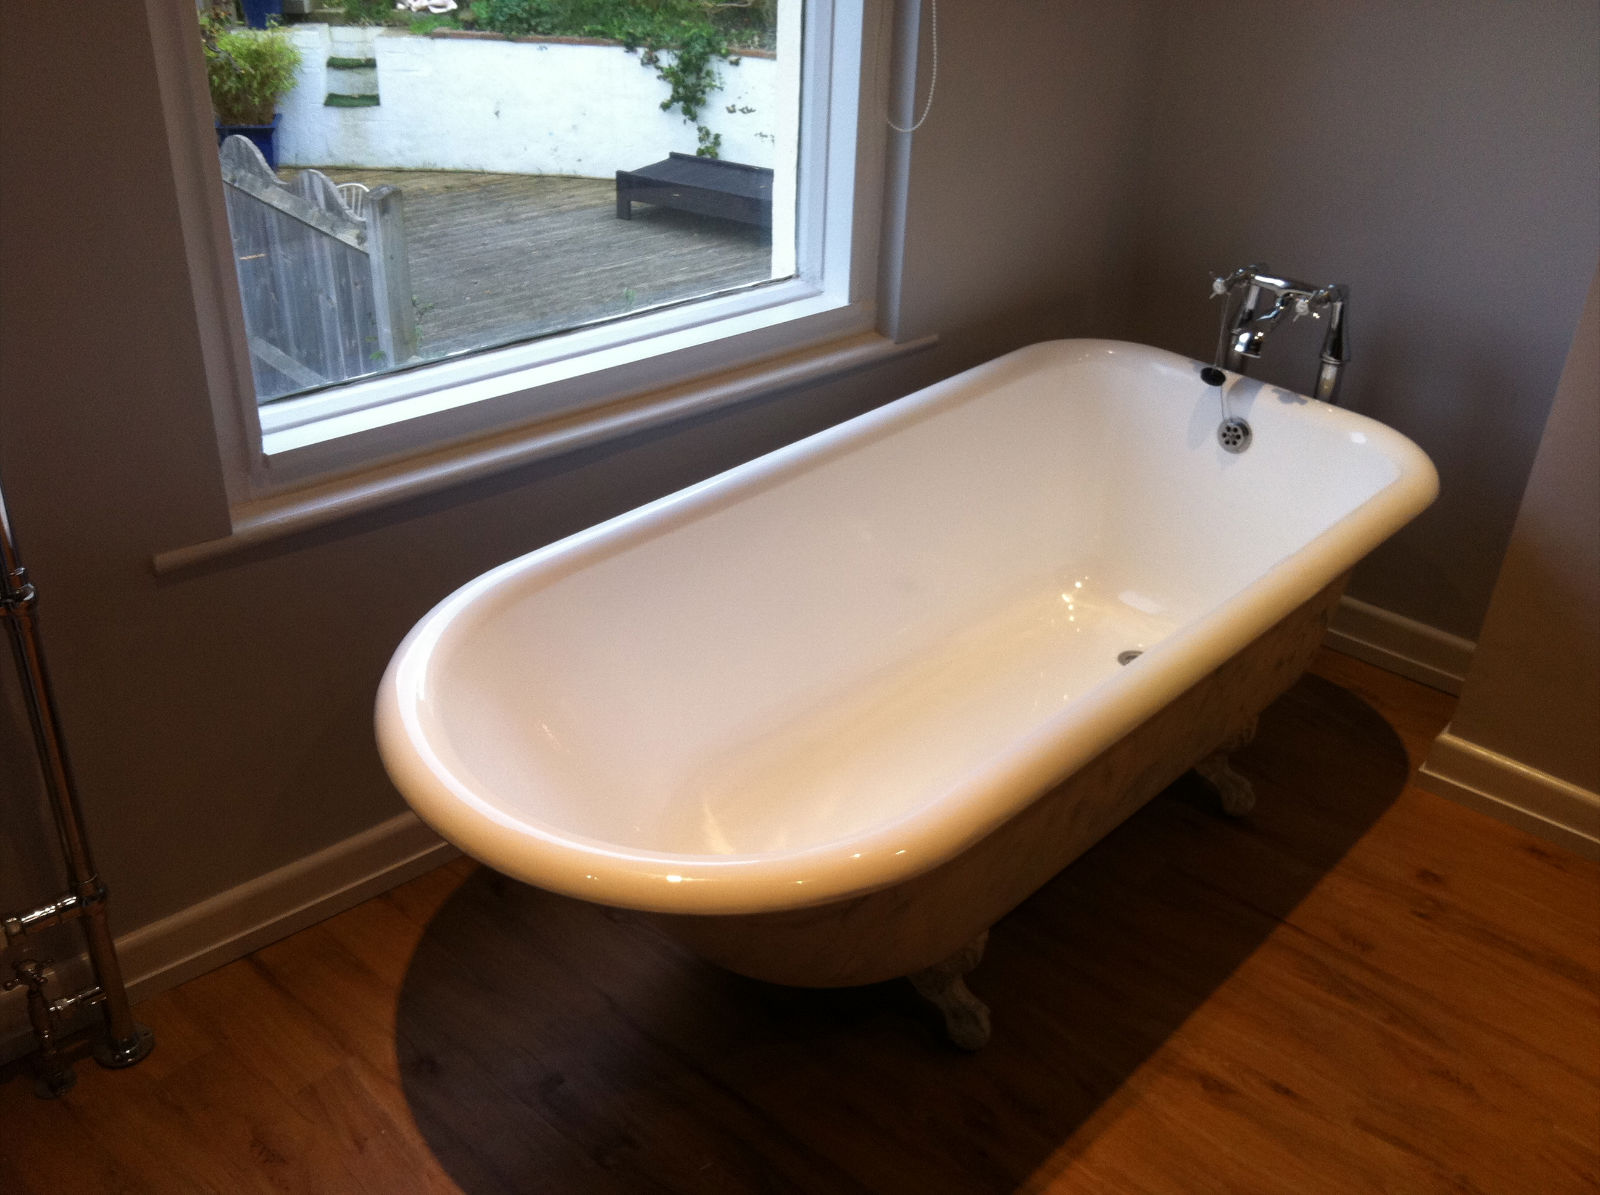 Resurfacing A Bathroom Suitethe Bath Business